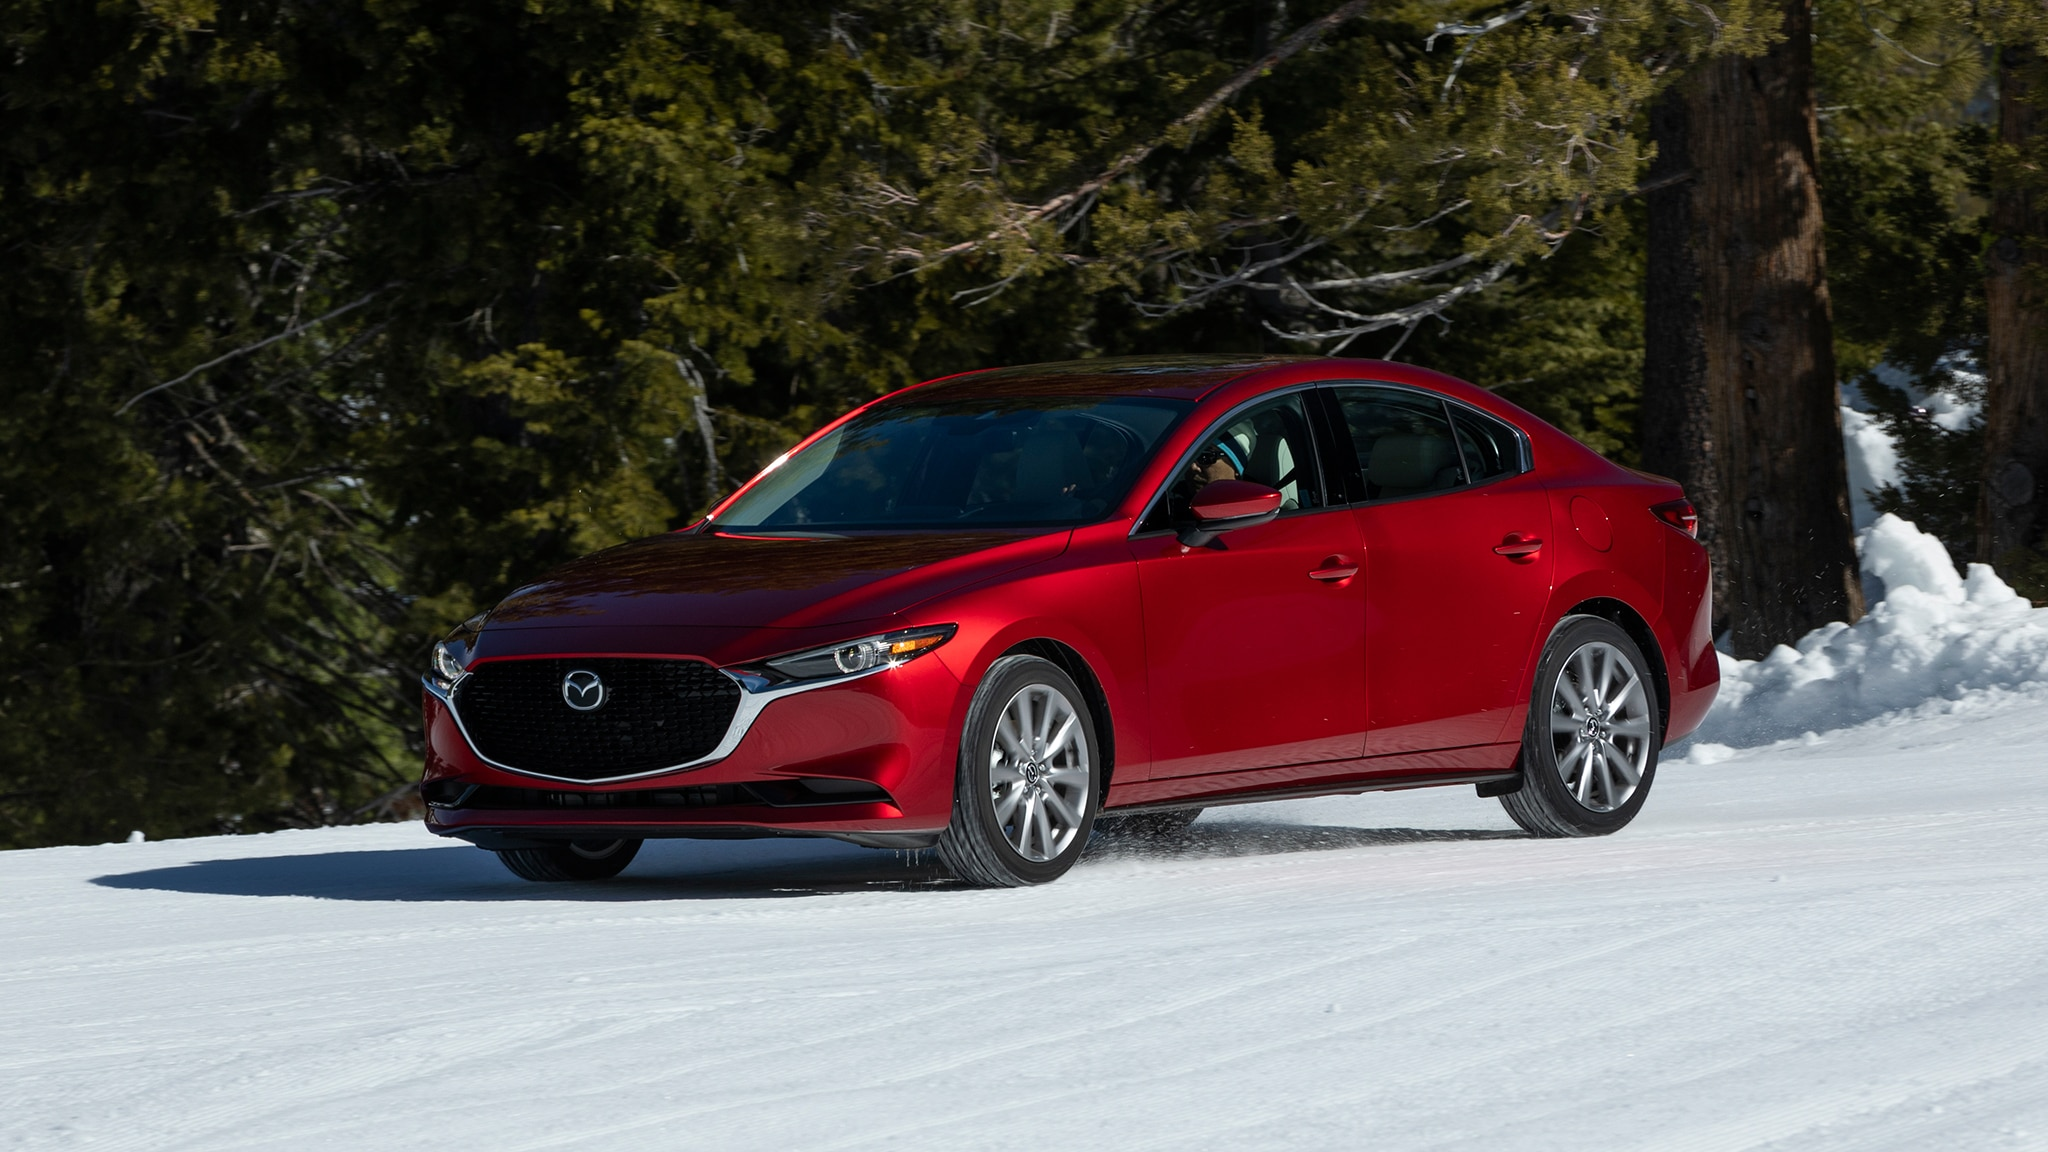 2019 Mazda3 AWD Snow Course 1